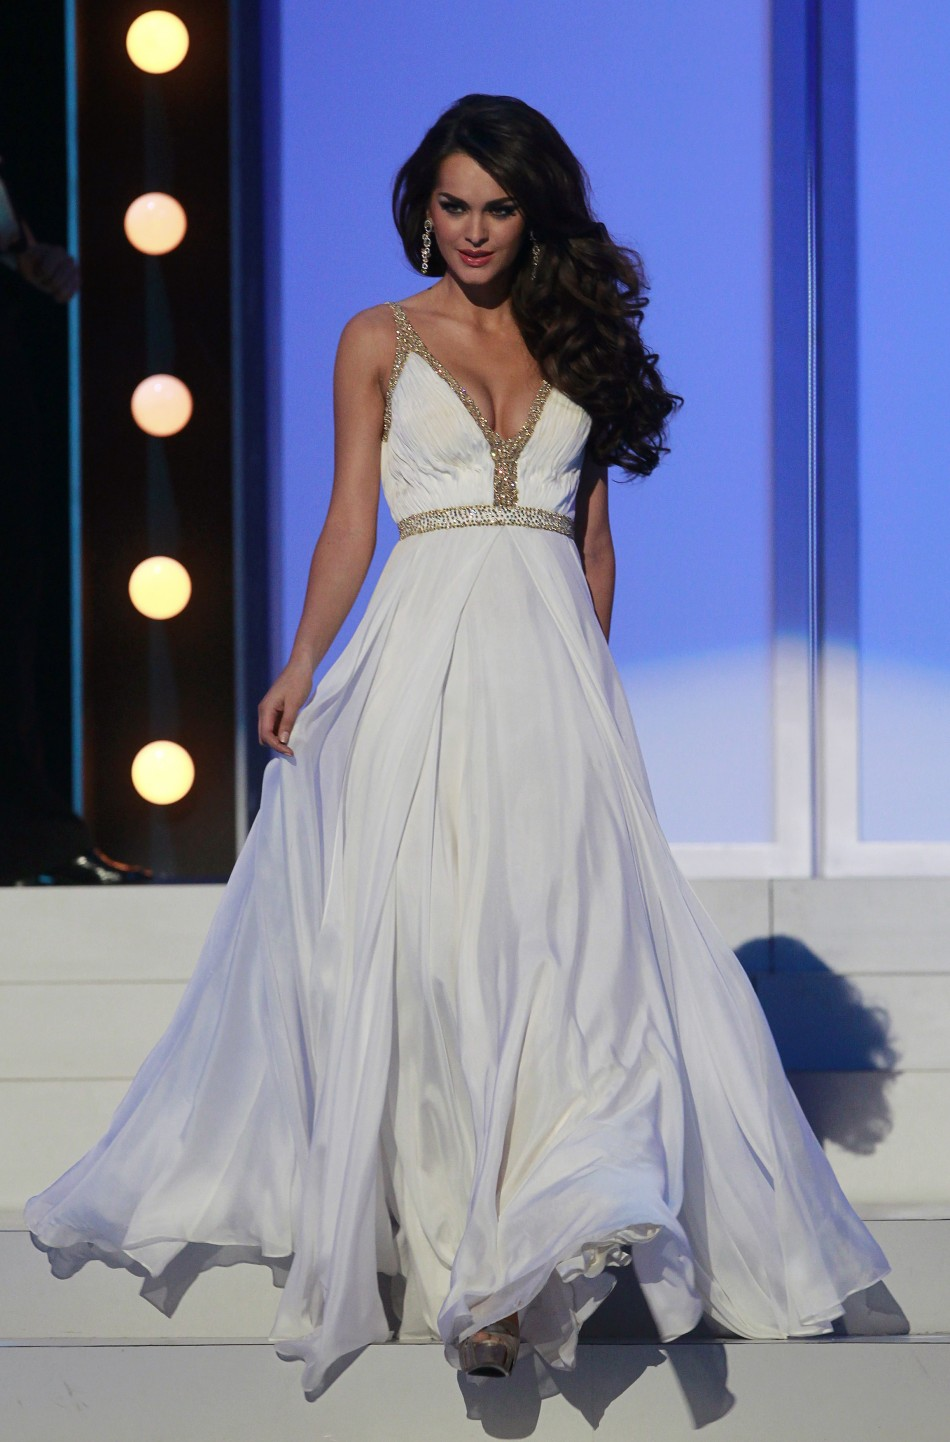 Miss Ukraine Olesia Stefanko participates in the evening gown segment of the Miss Universe 2011 pageant in Sao Paulo